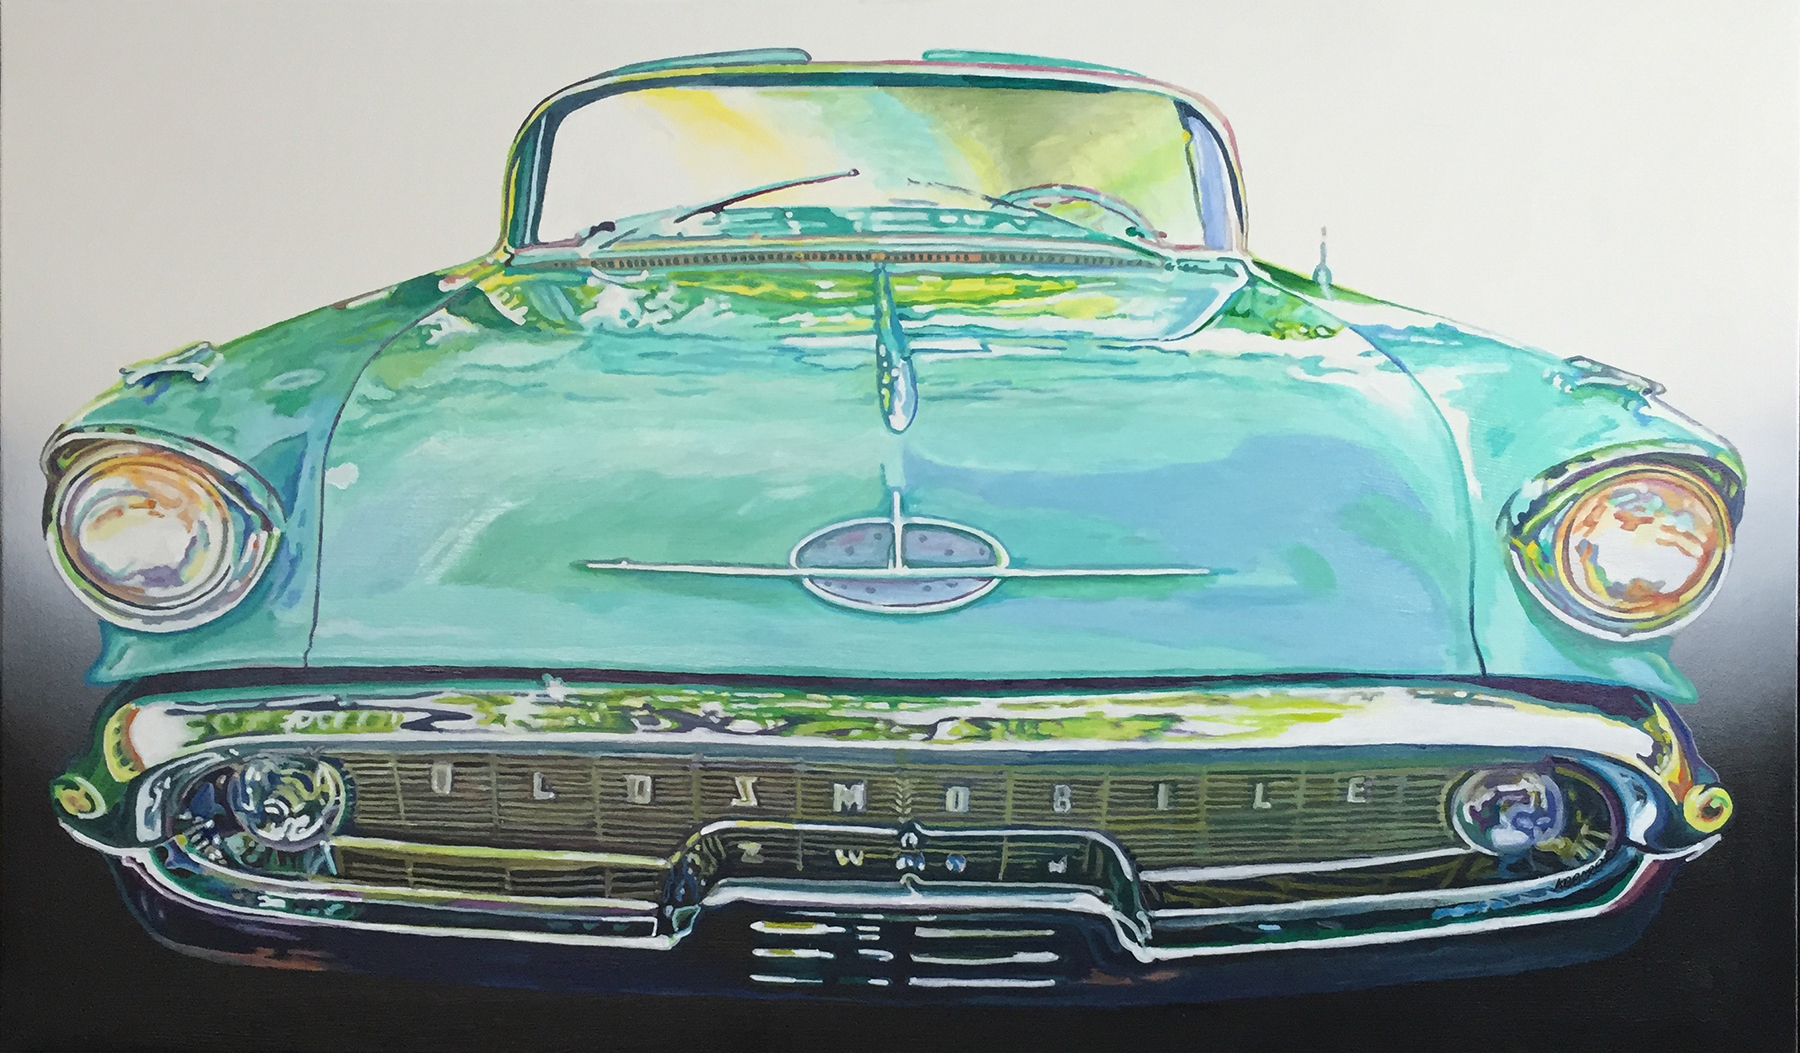 Tony Abboreno_57 Oldsmobile 88 Convertible_40x24in_acrylic on canvas_$1600